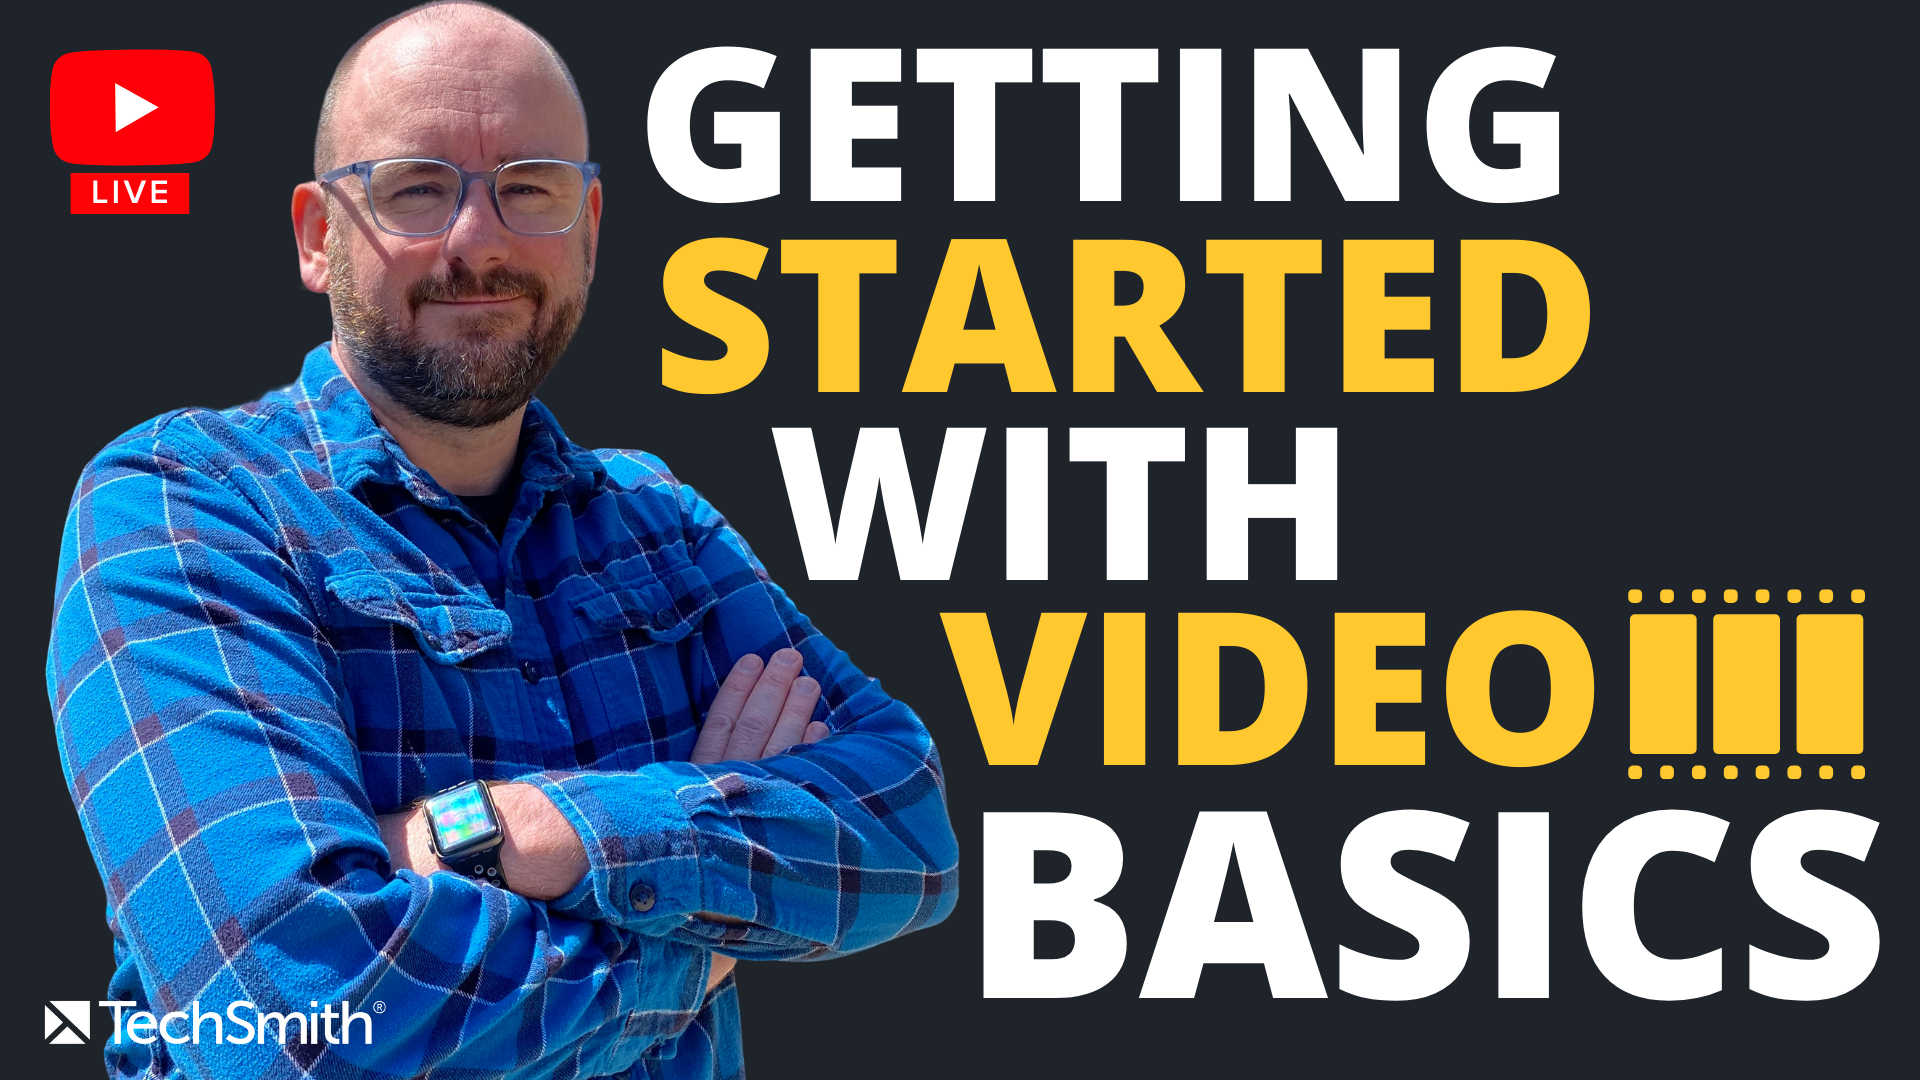 The Basic Tips You Need to Start Making Videos